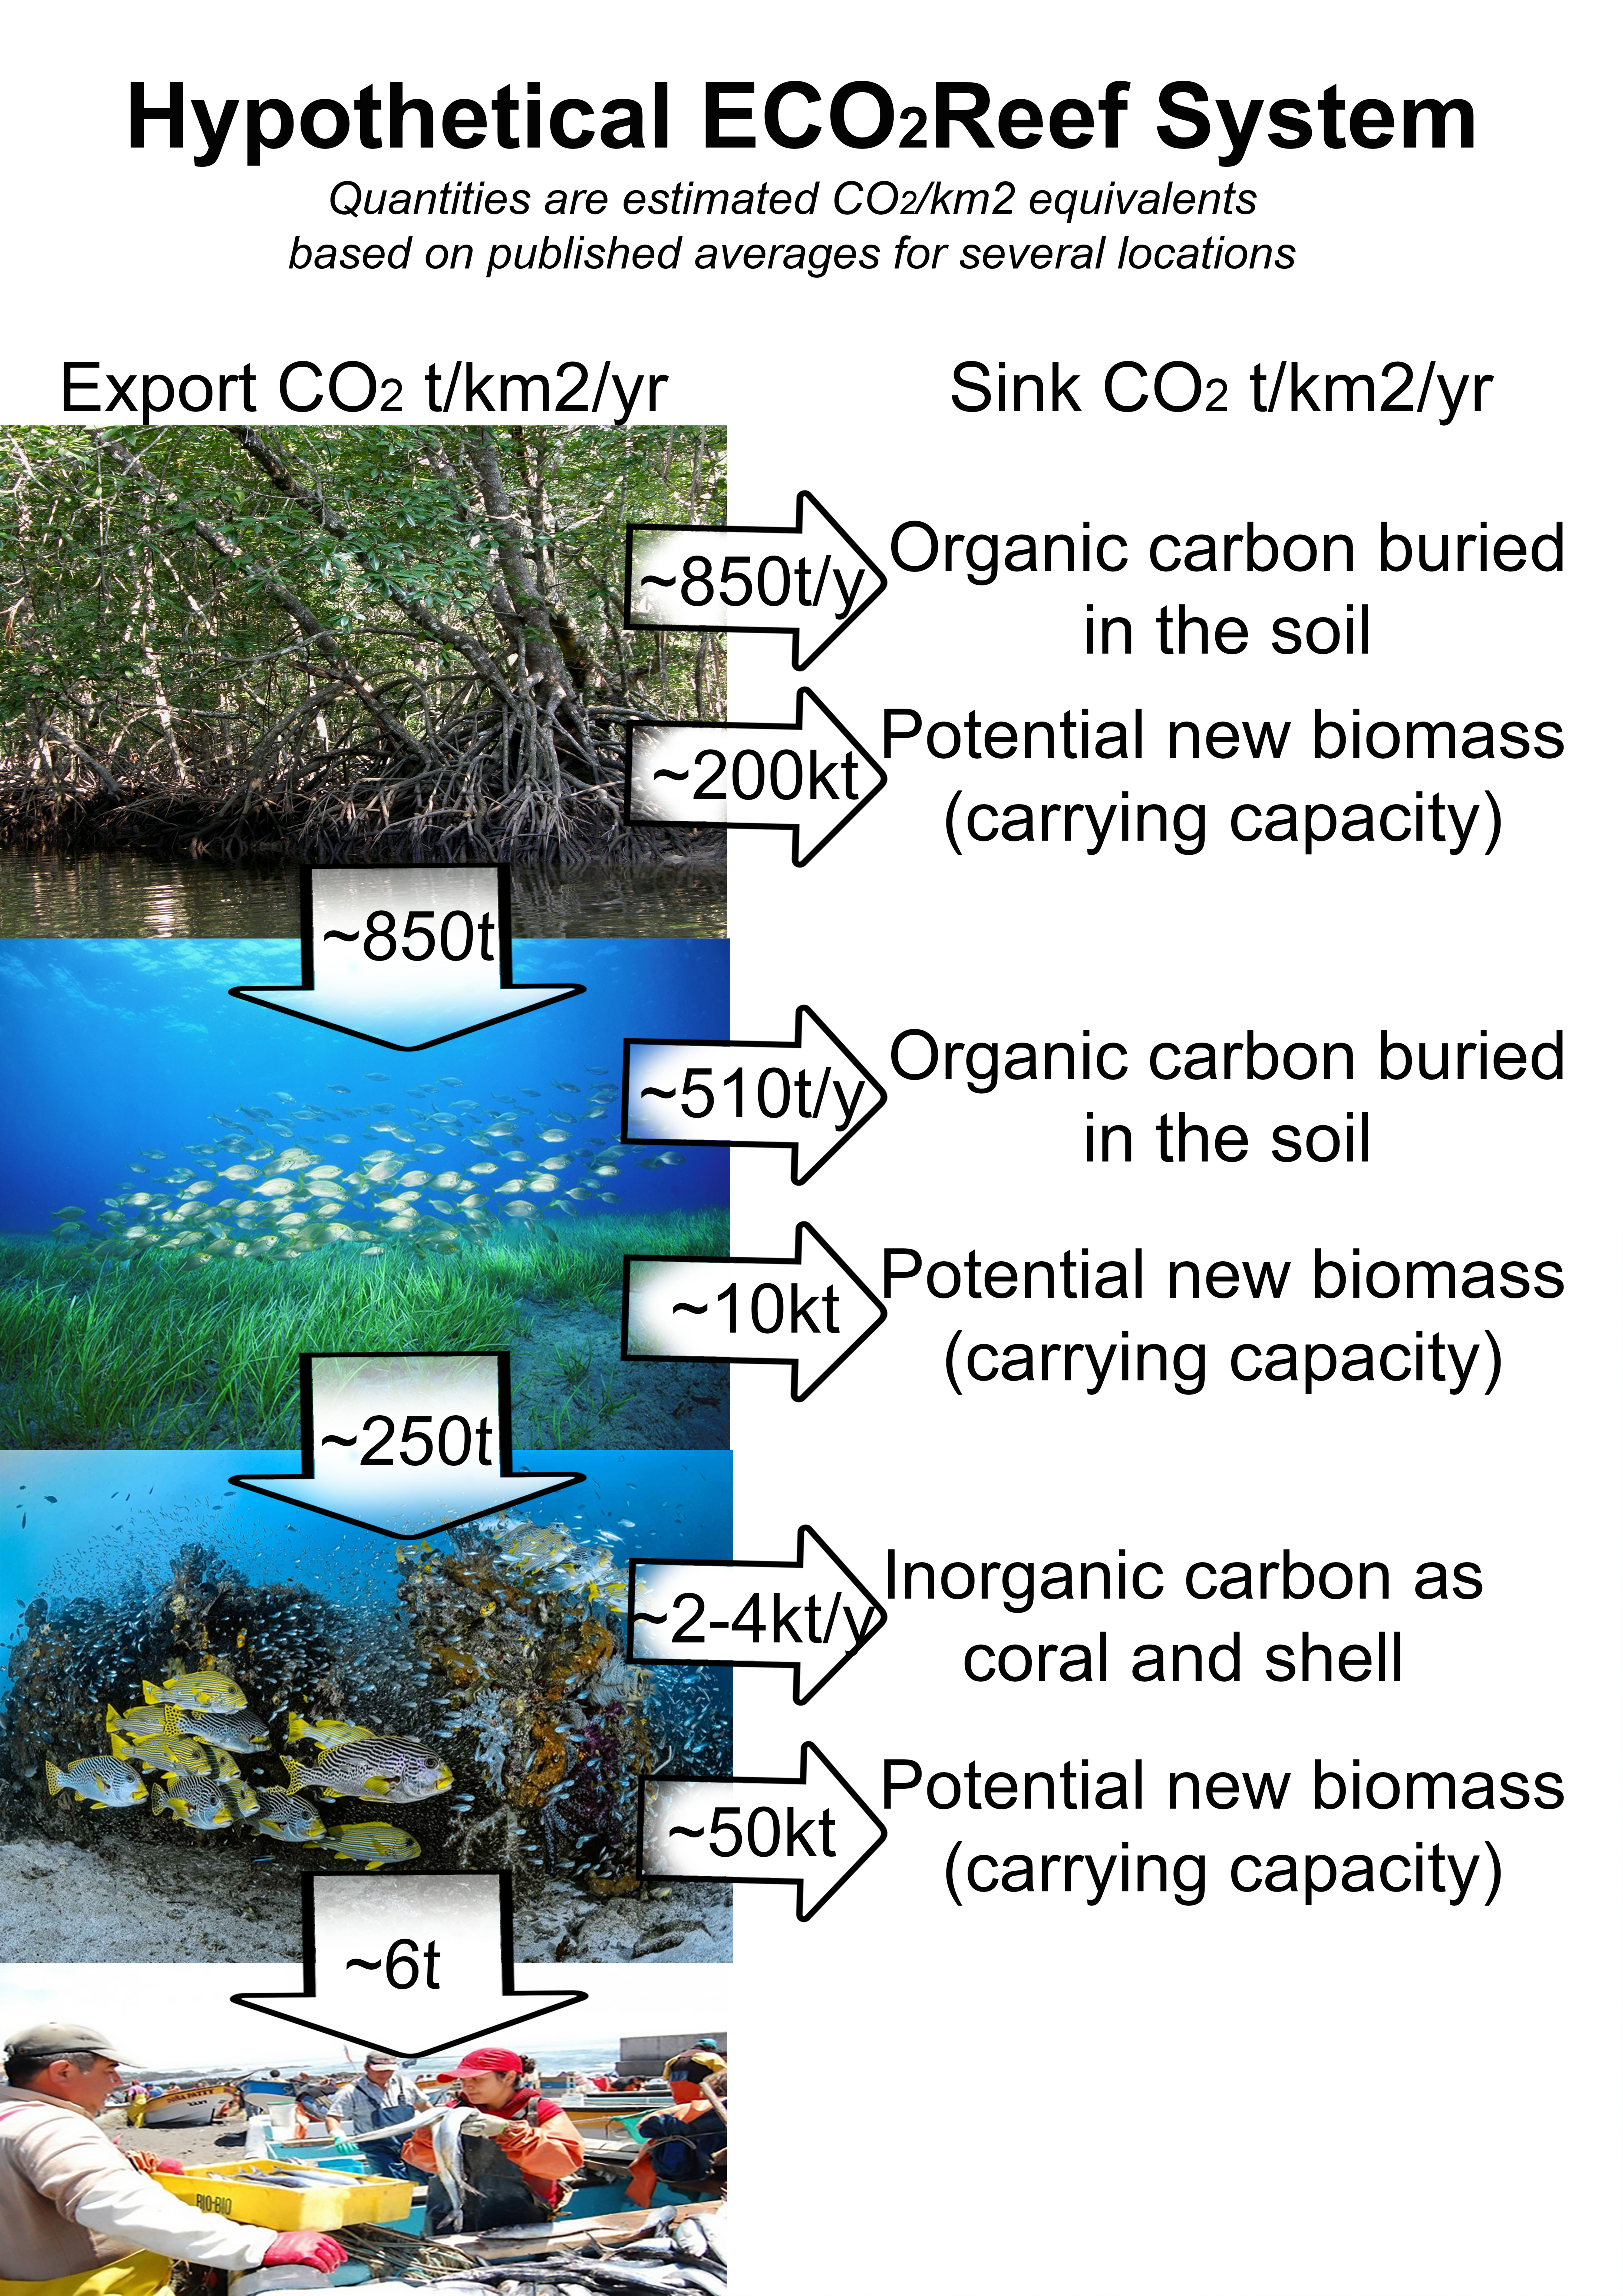 Hypothetical ECO-Reef Flow Diagram carbon offset removed